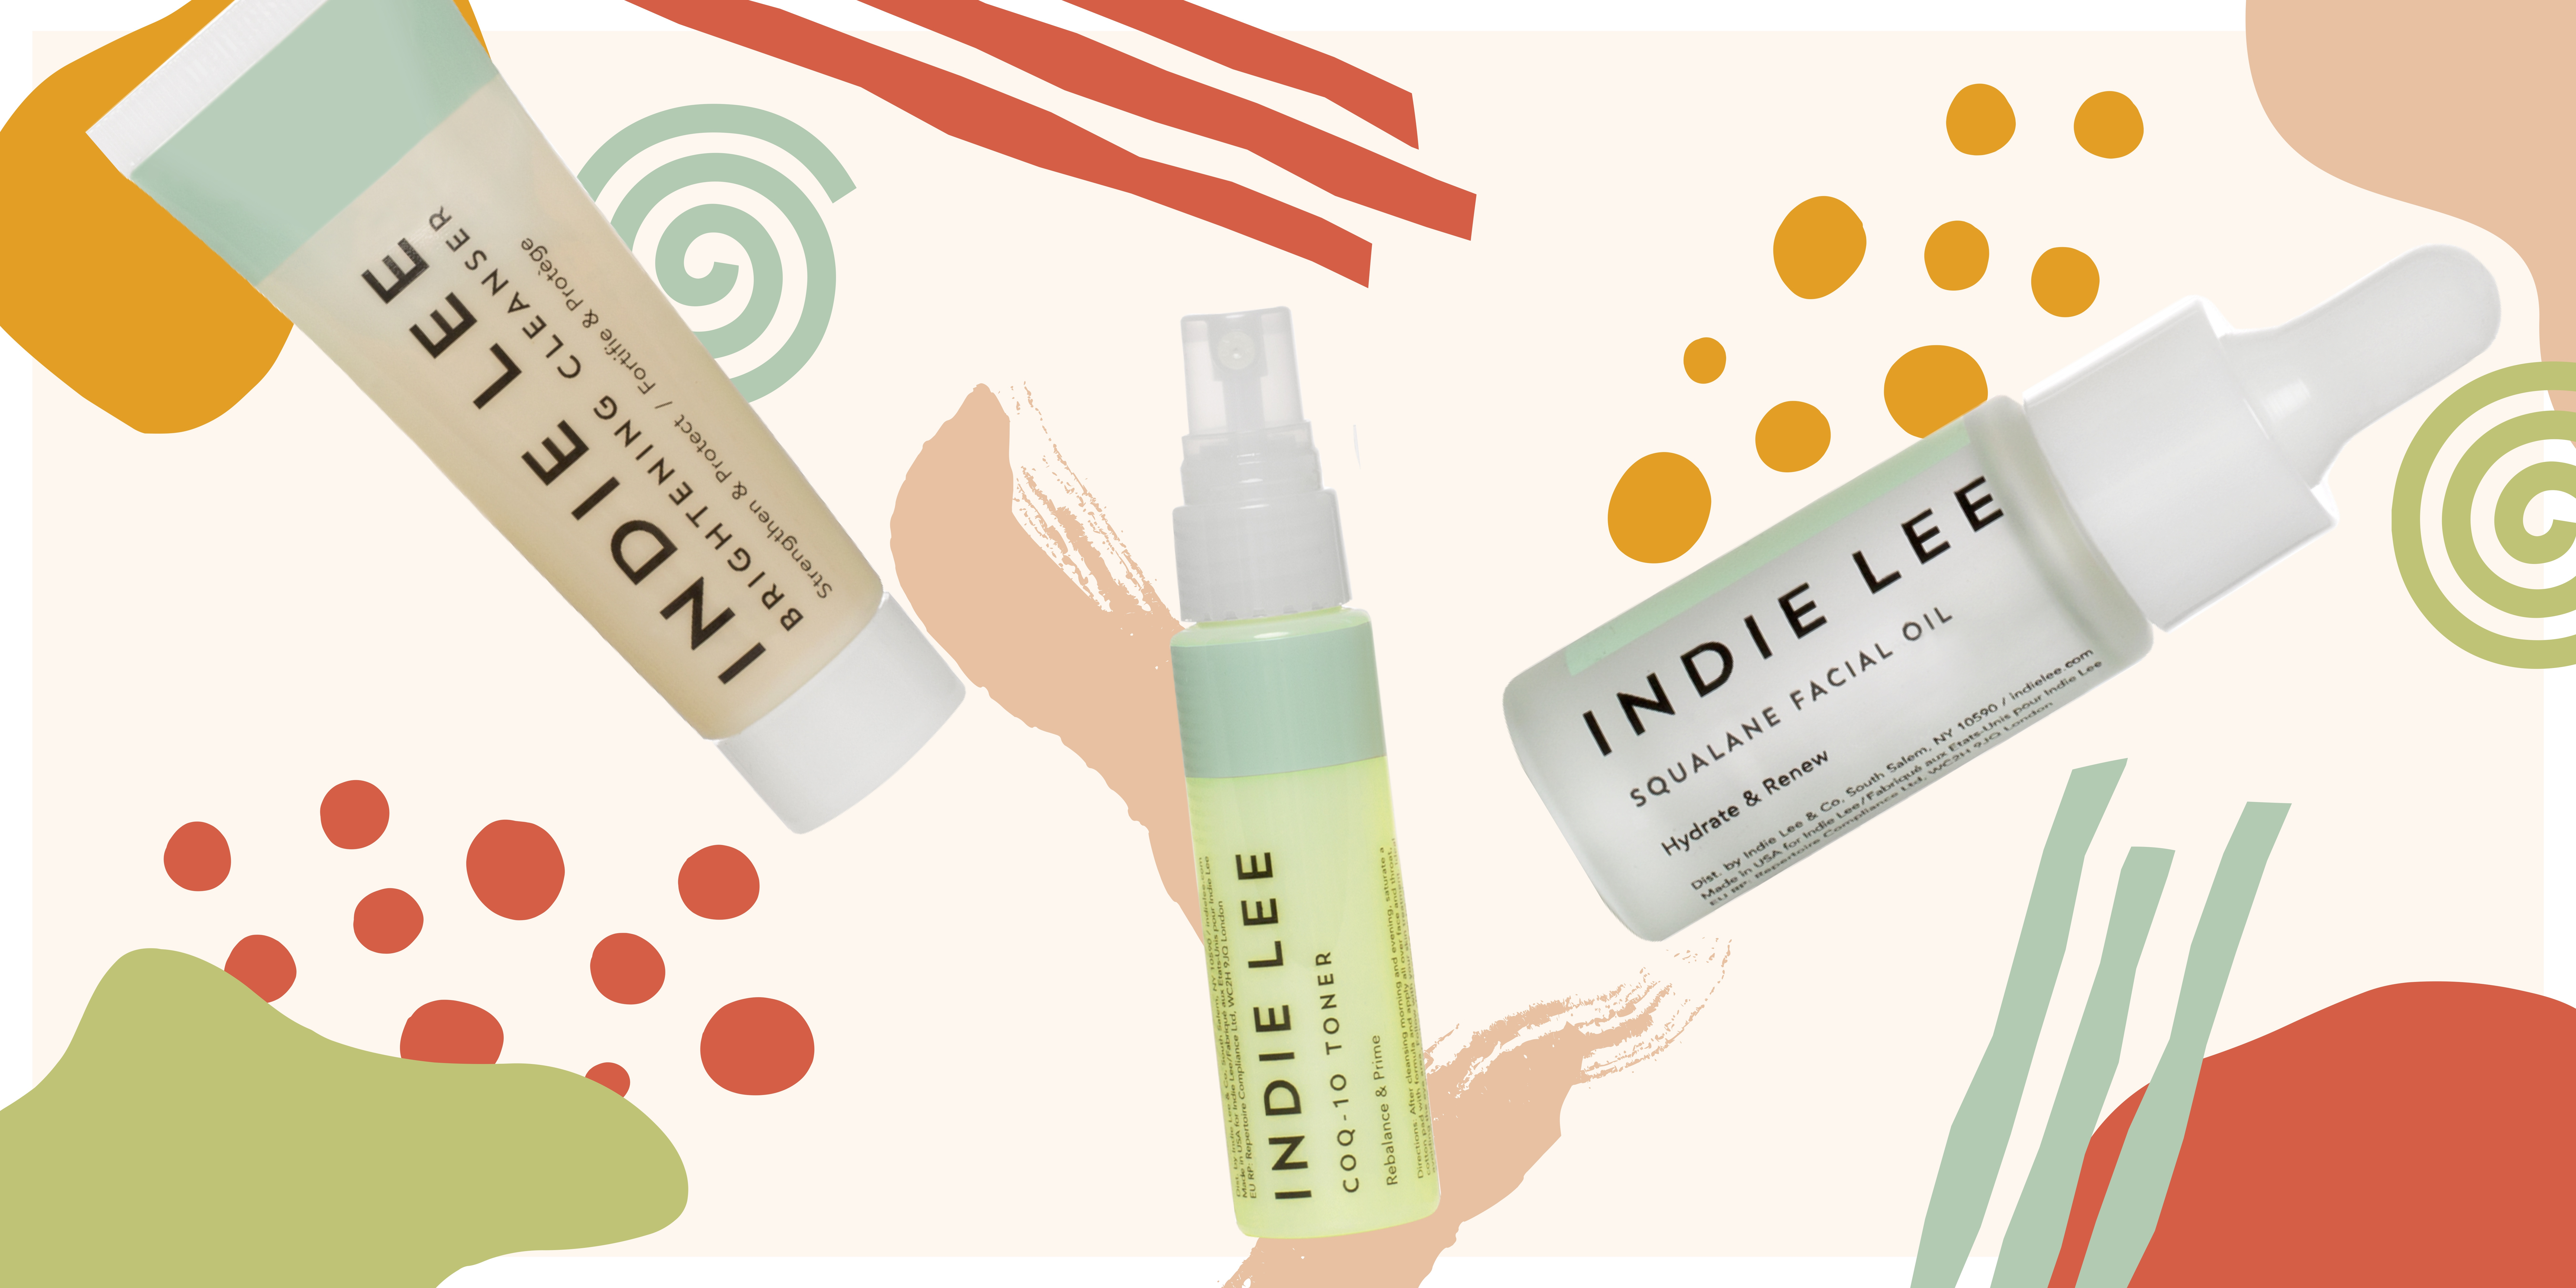 Indie Lee & Co. products